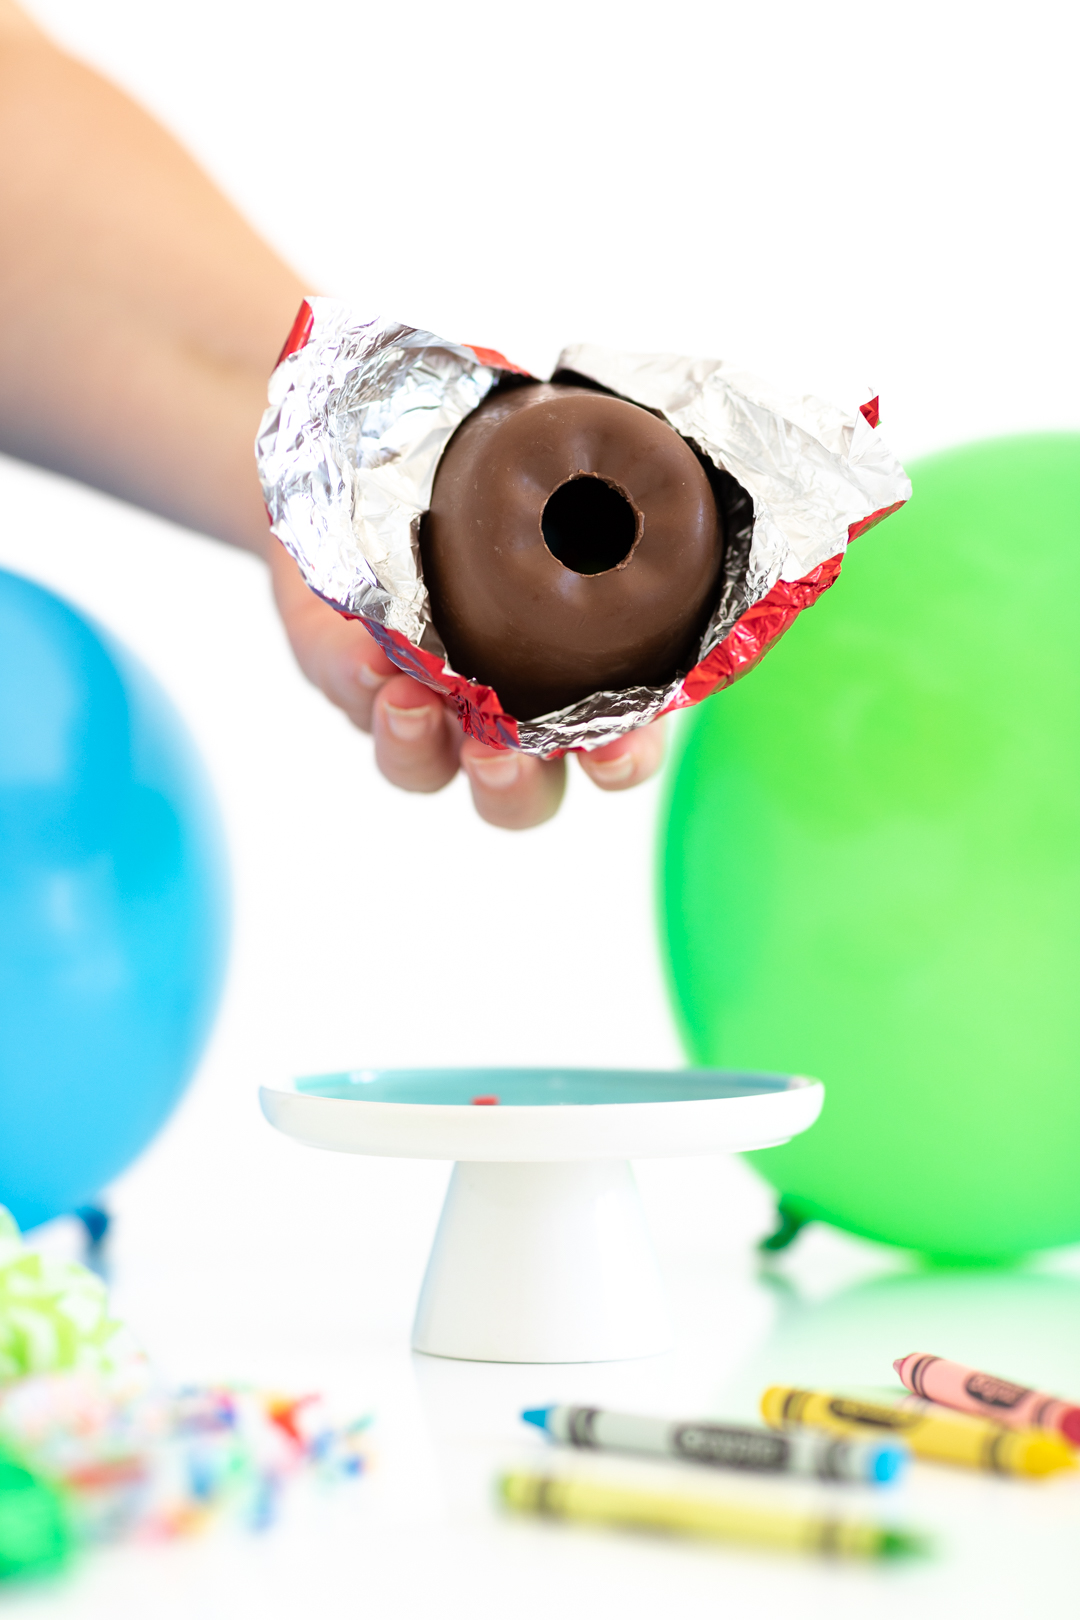 woman holding hollow chocolate apple with hole in the center